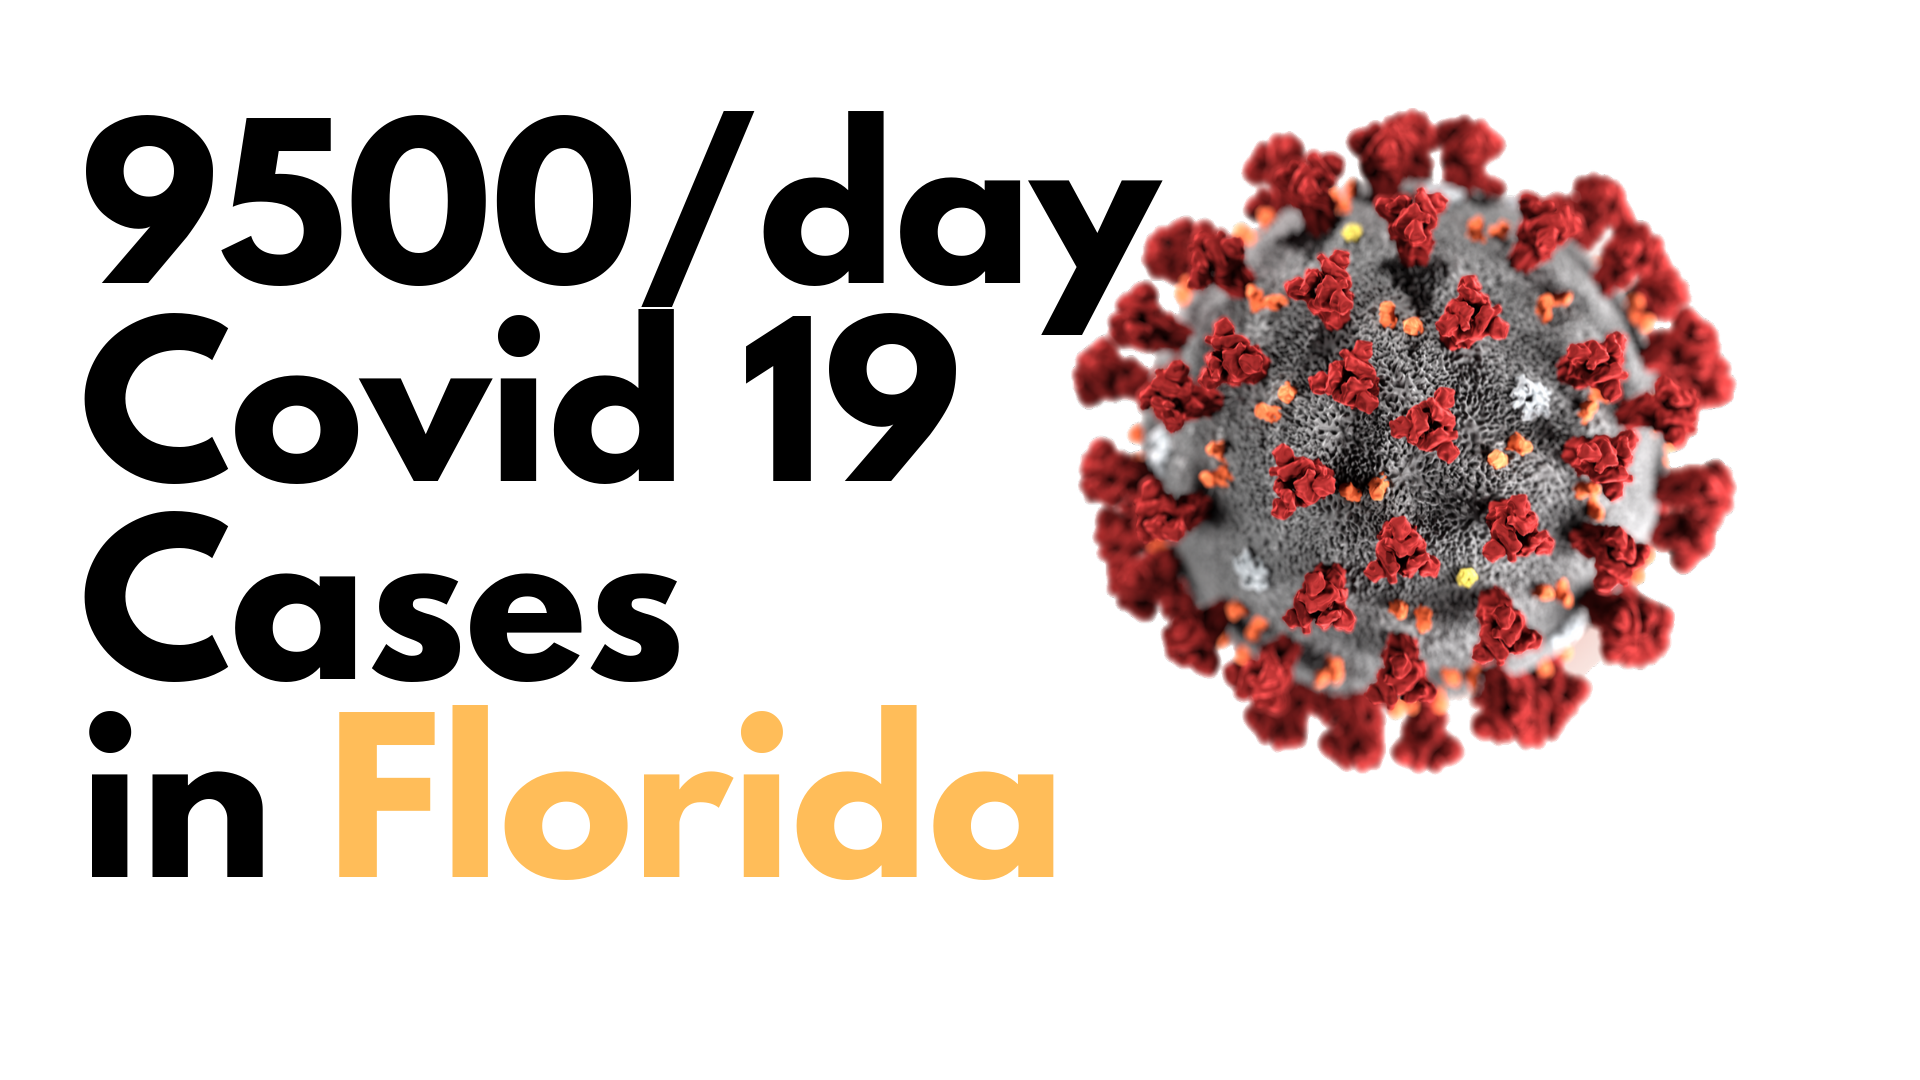 Florida breaks record with 9,585 Covid19 new cases 1